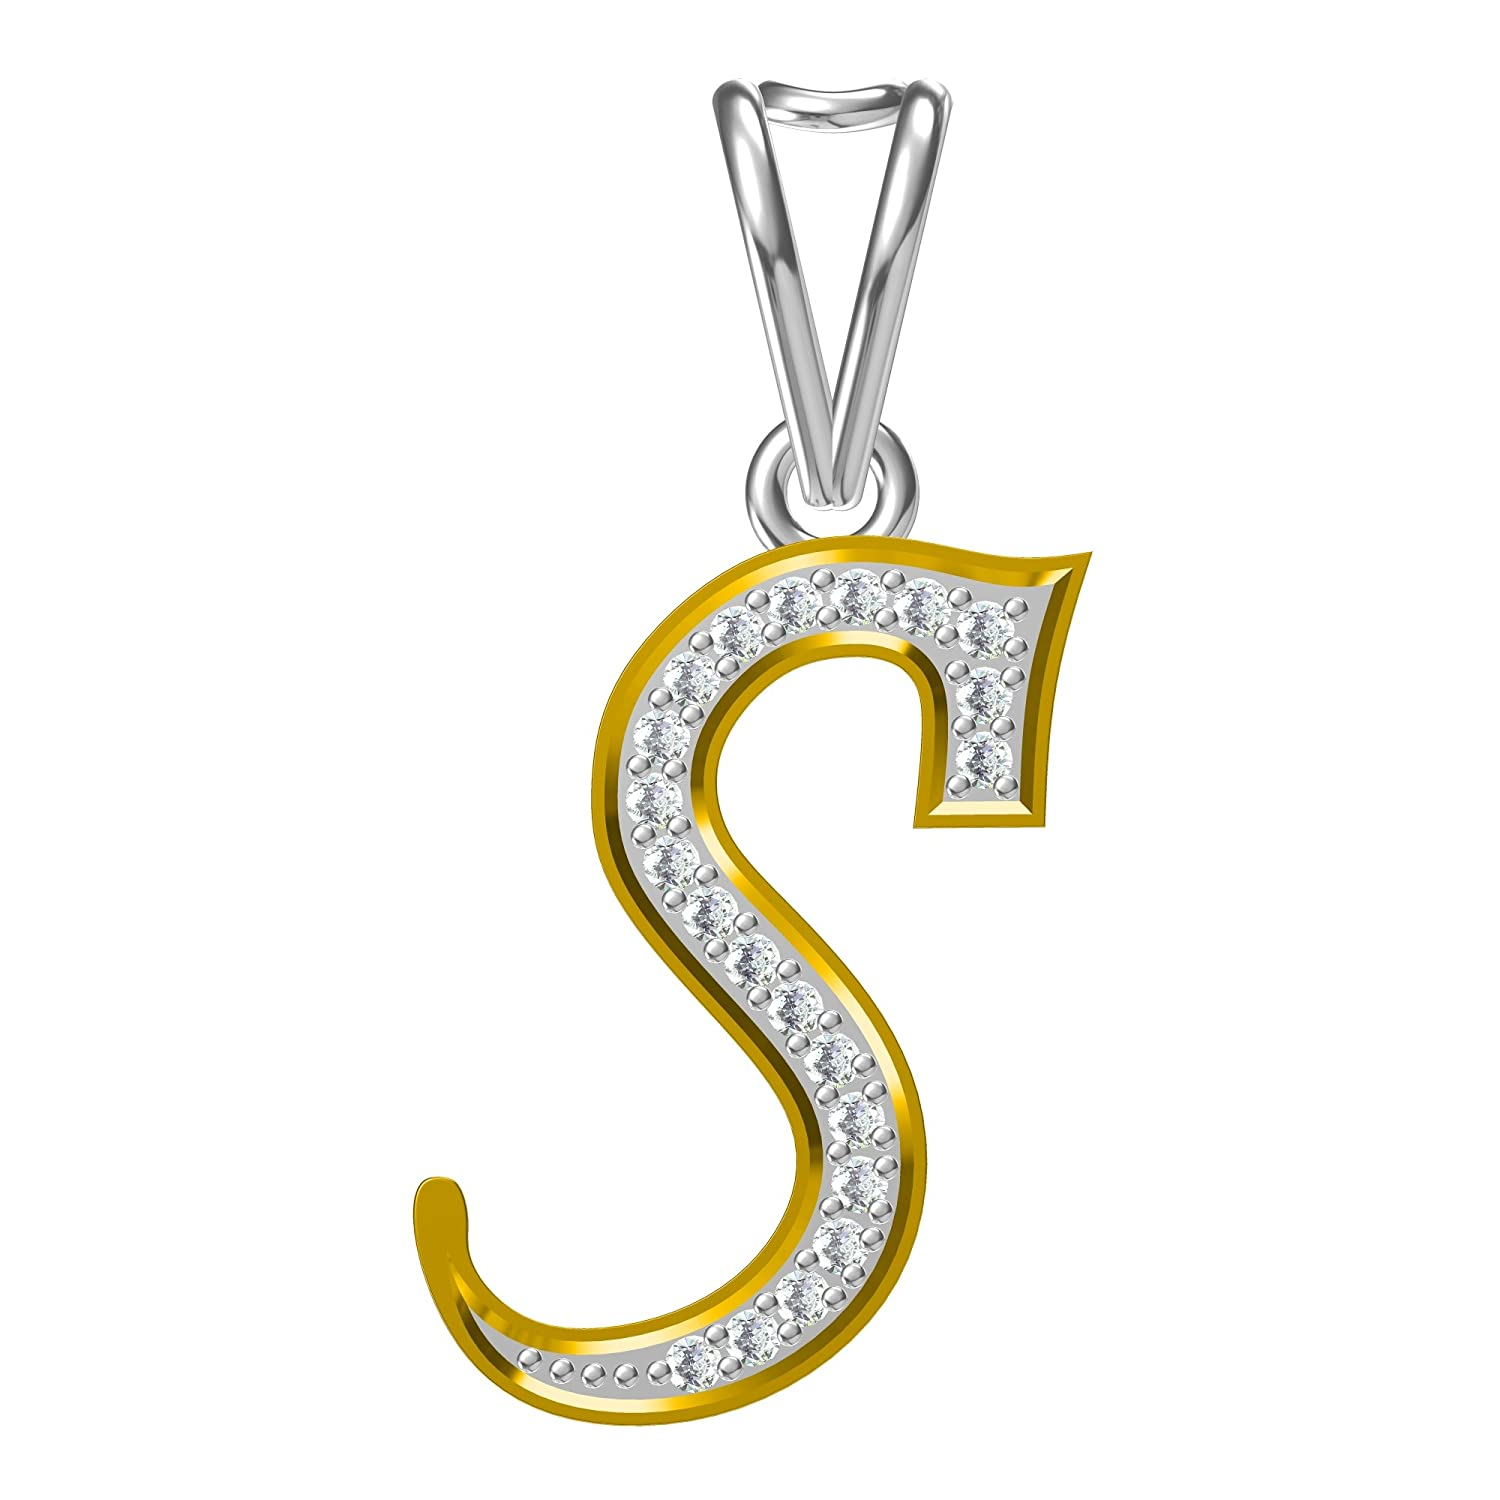 14K Yellow Gold Plated Fn Alloy Simulated Diamond Studded Initial Letter S Pendant Necklace With Chain